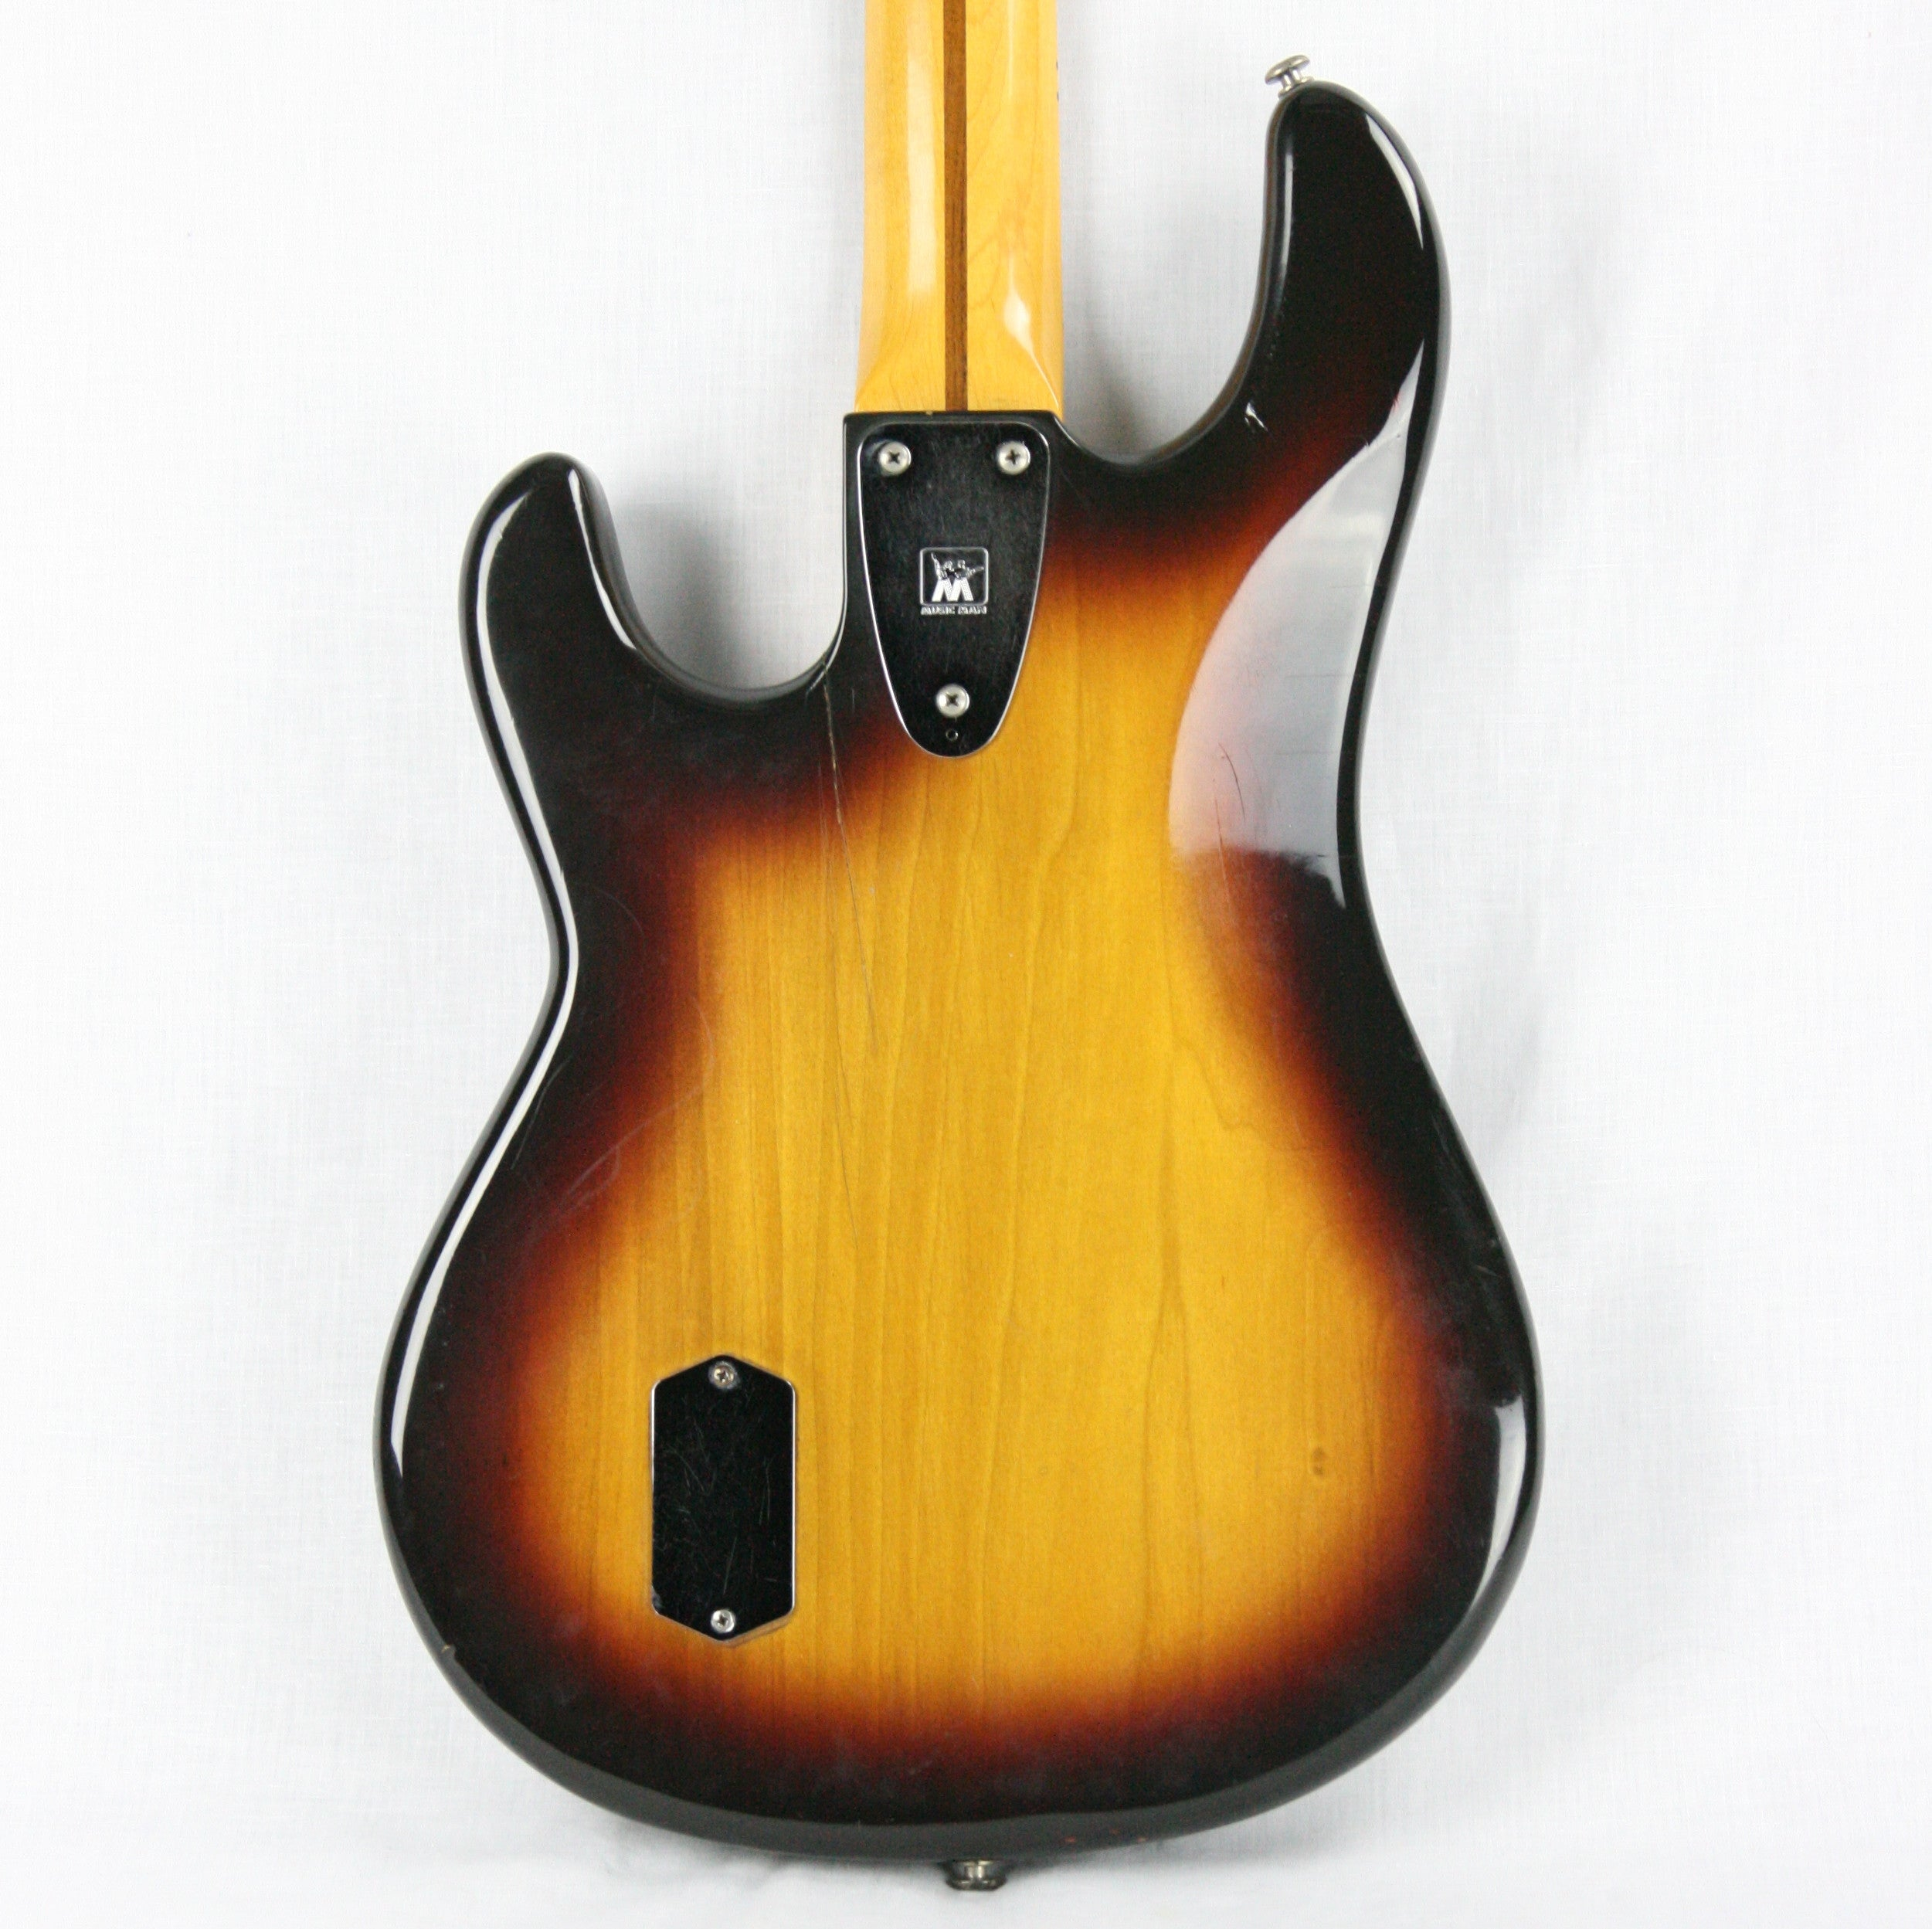 1979 MusicMan Sabre Bass Sunburst w/ OHSC! Pre-EB Ernie Ball 3-bolt, Maple Neck! Stingray